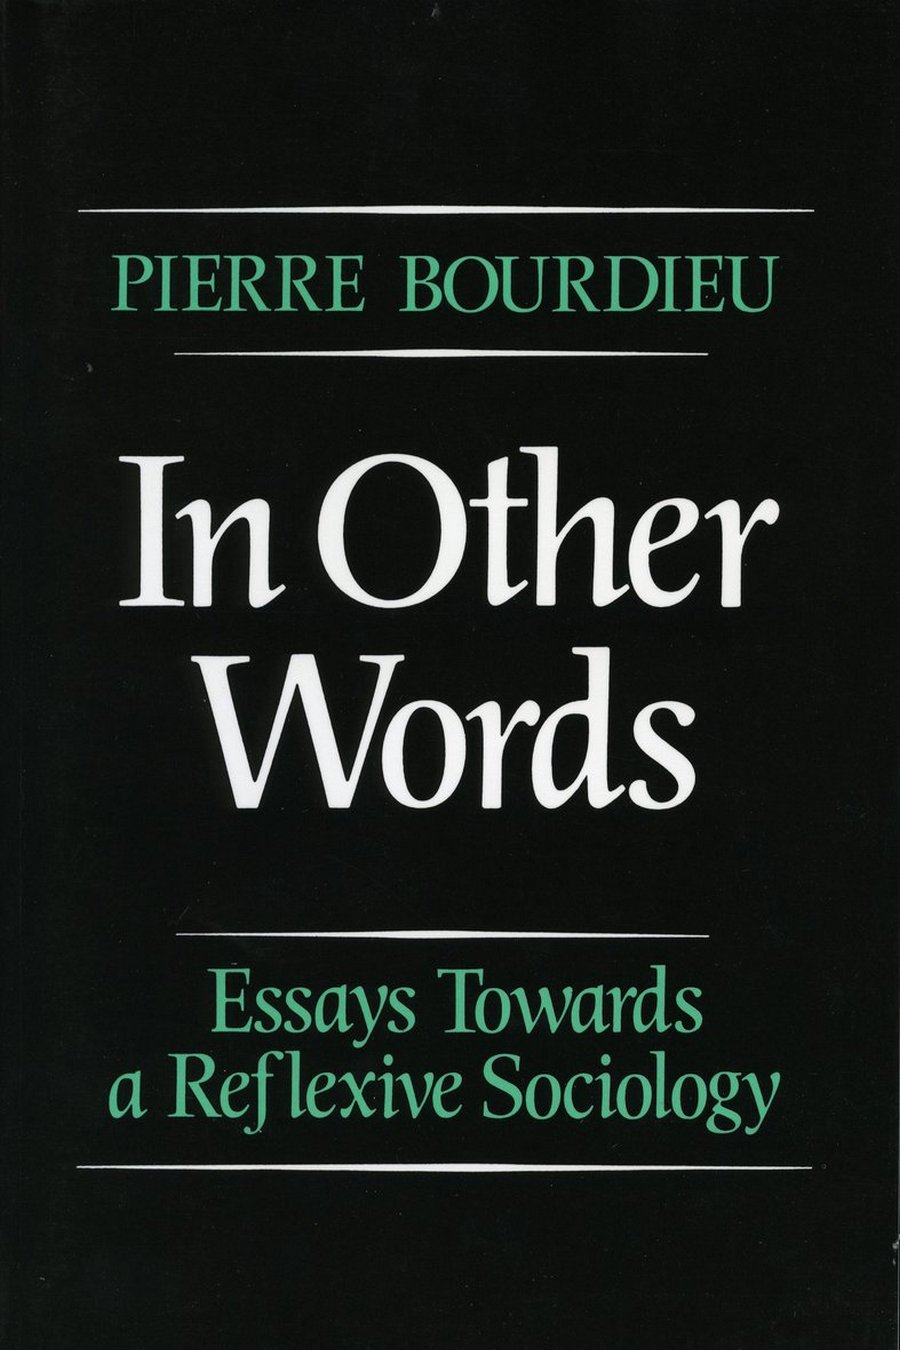 in other words essays toward a reflexive sociology pierre in other words essays toward a reflexive sociology pierre bourdieu matthew adamson 9780804717250 com books